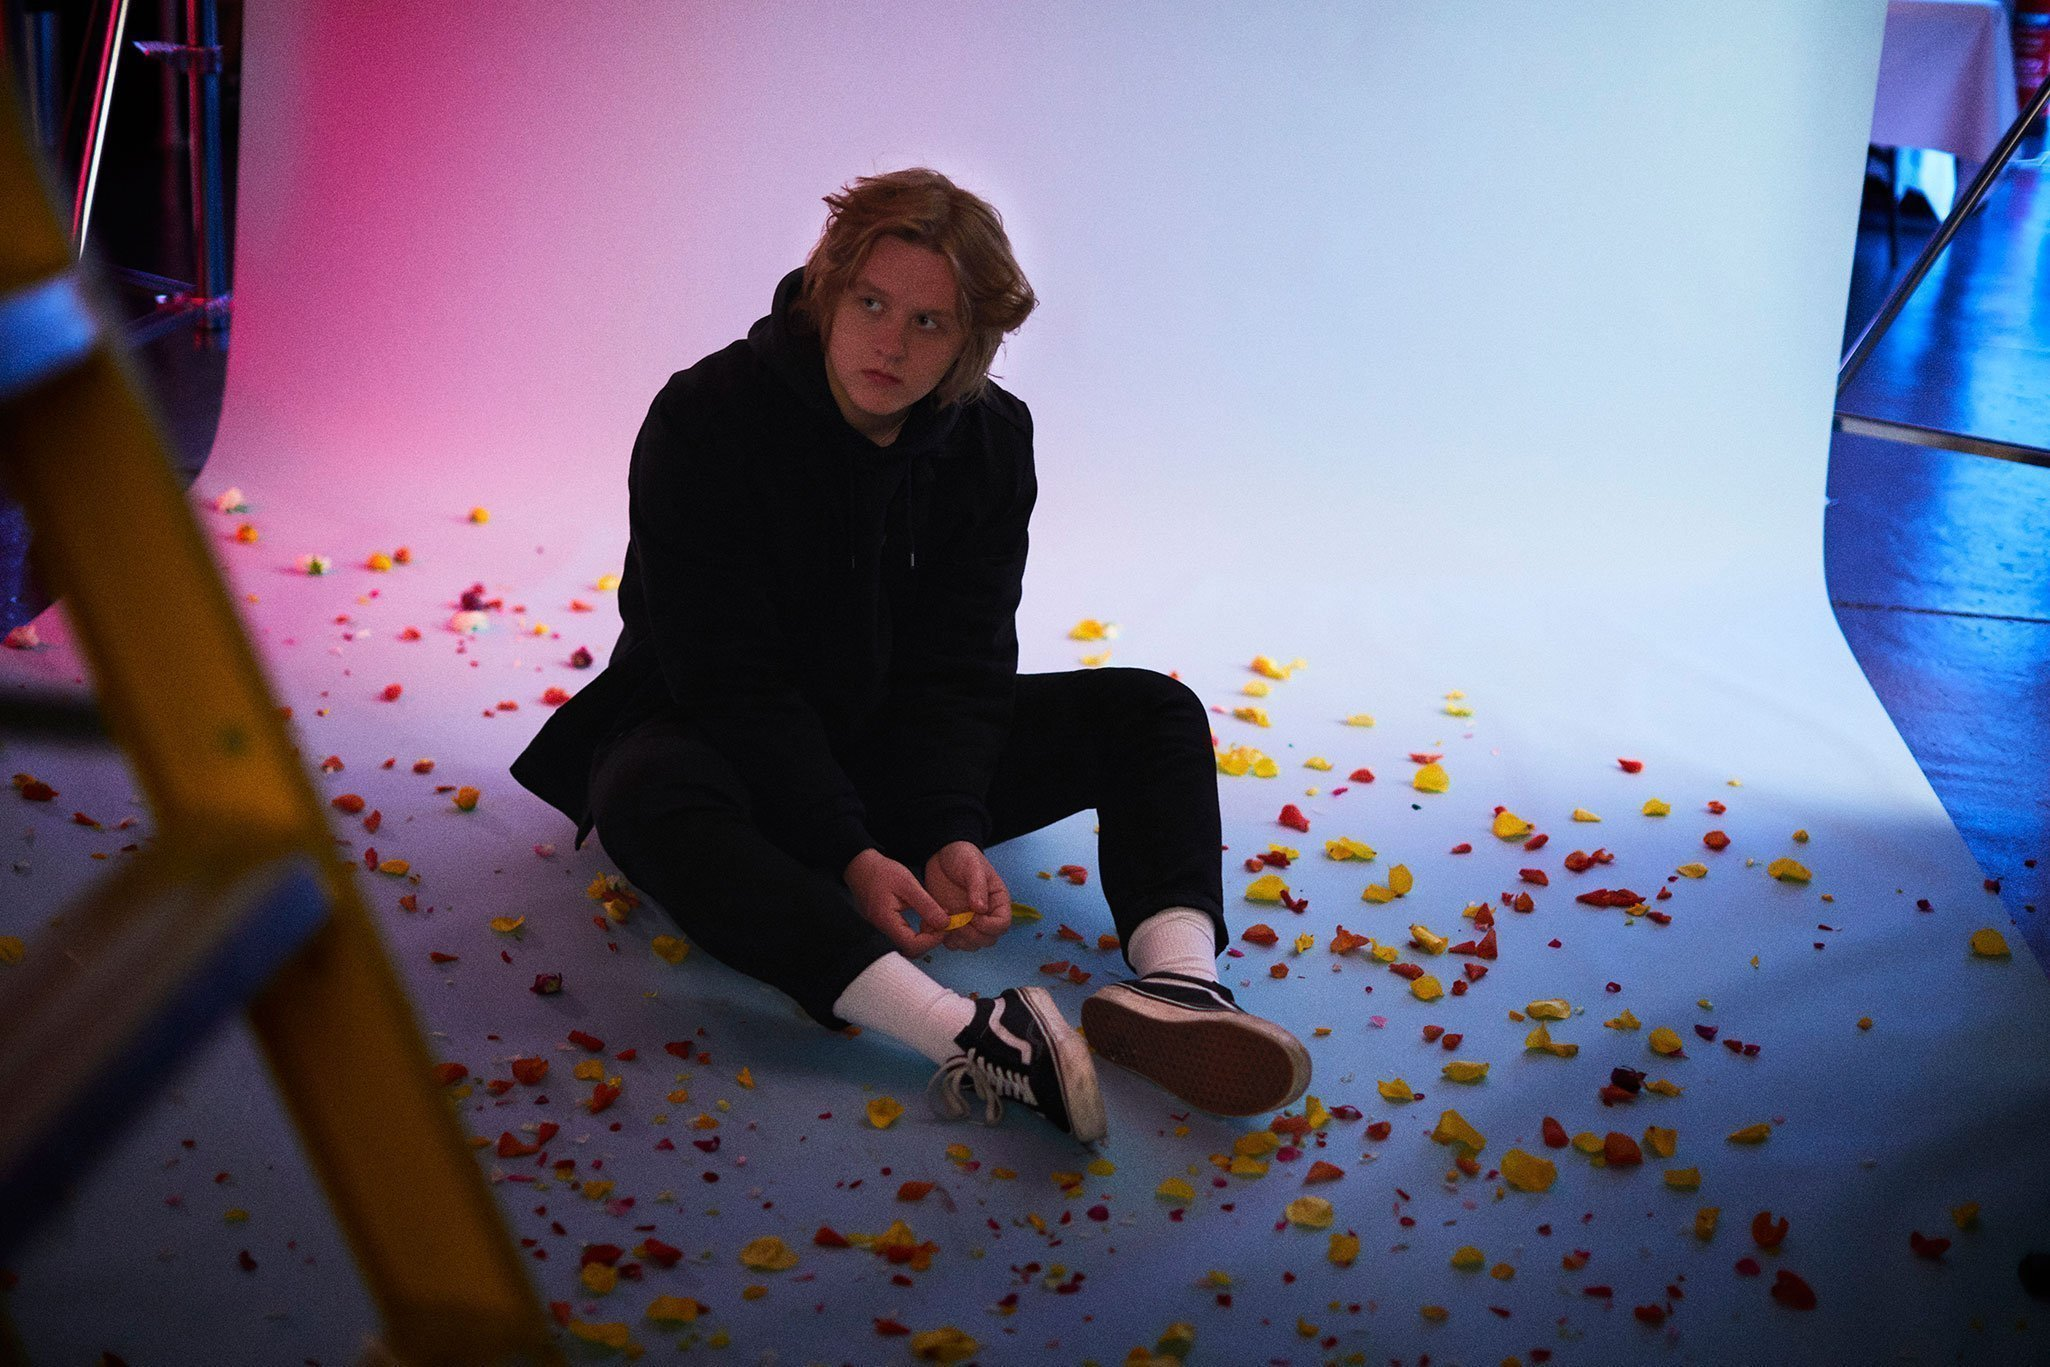 LEWIS CAPALDI Releases New Single 'Bruises' as part of new EP - Listen Now